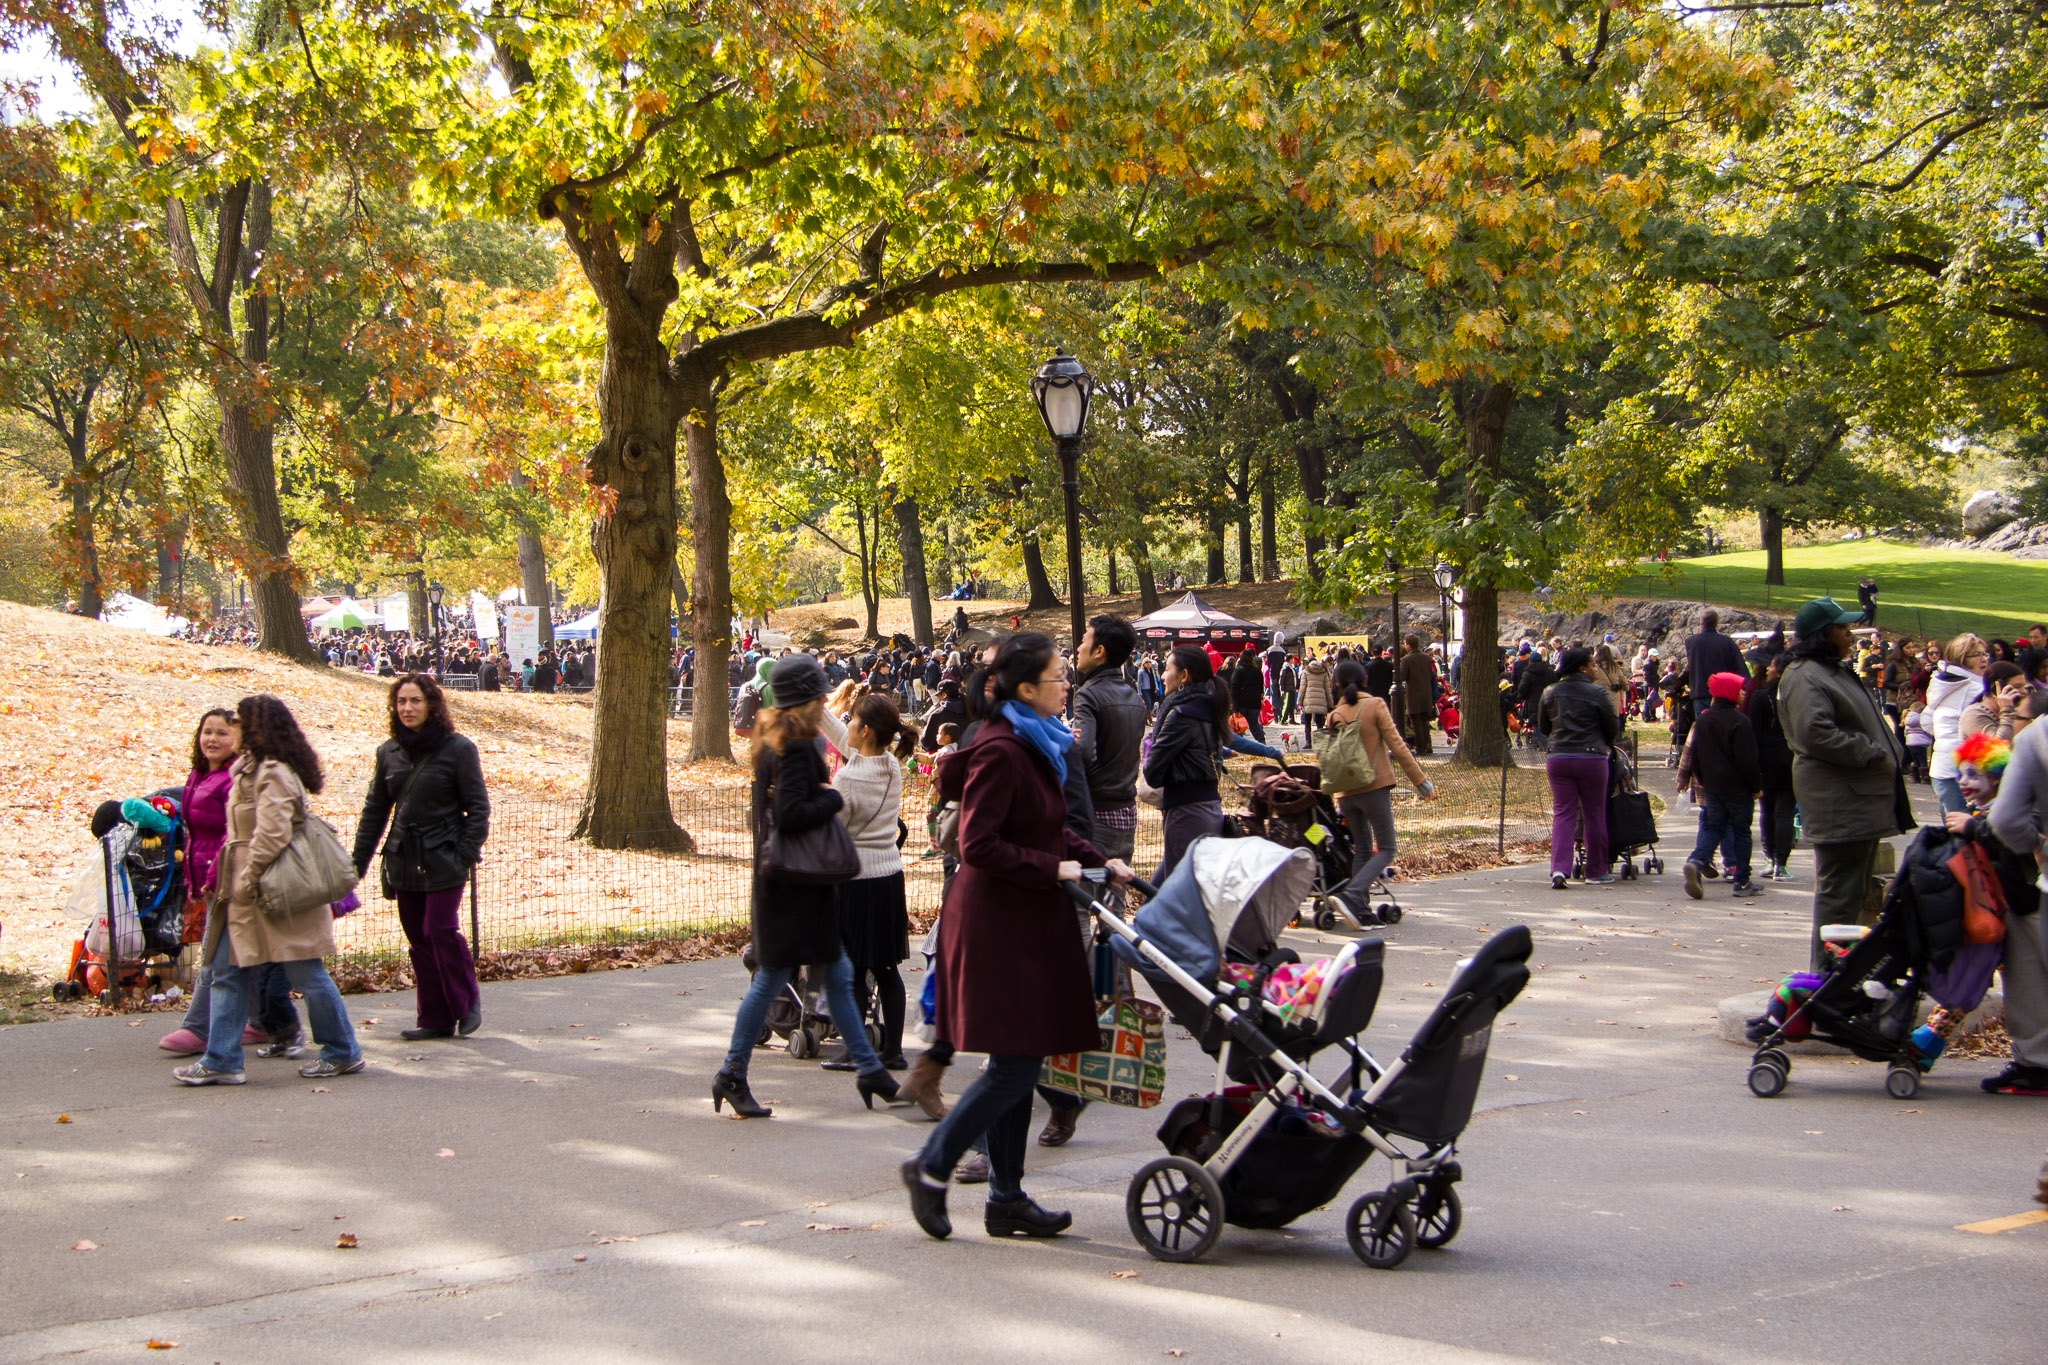 Crowds-in-central-park